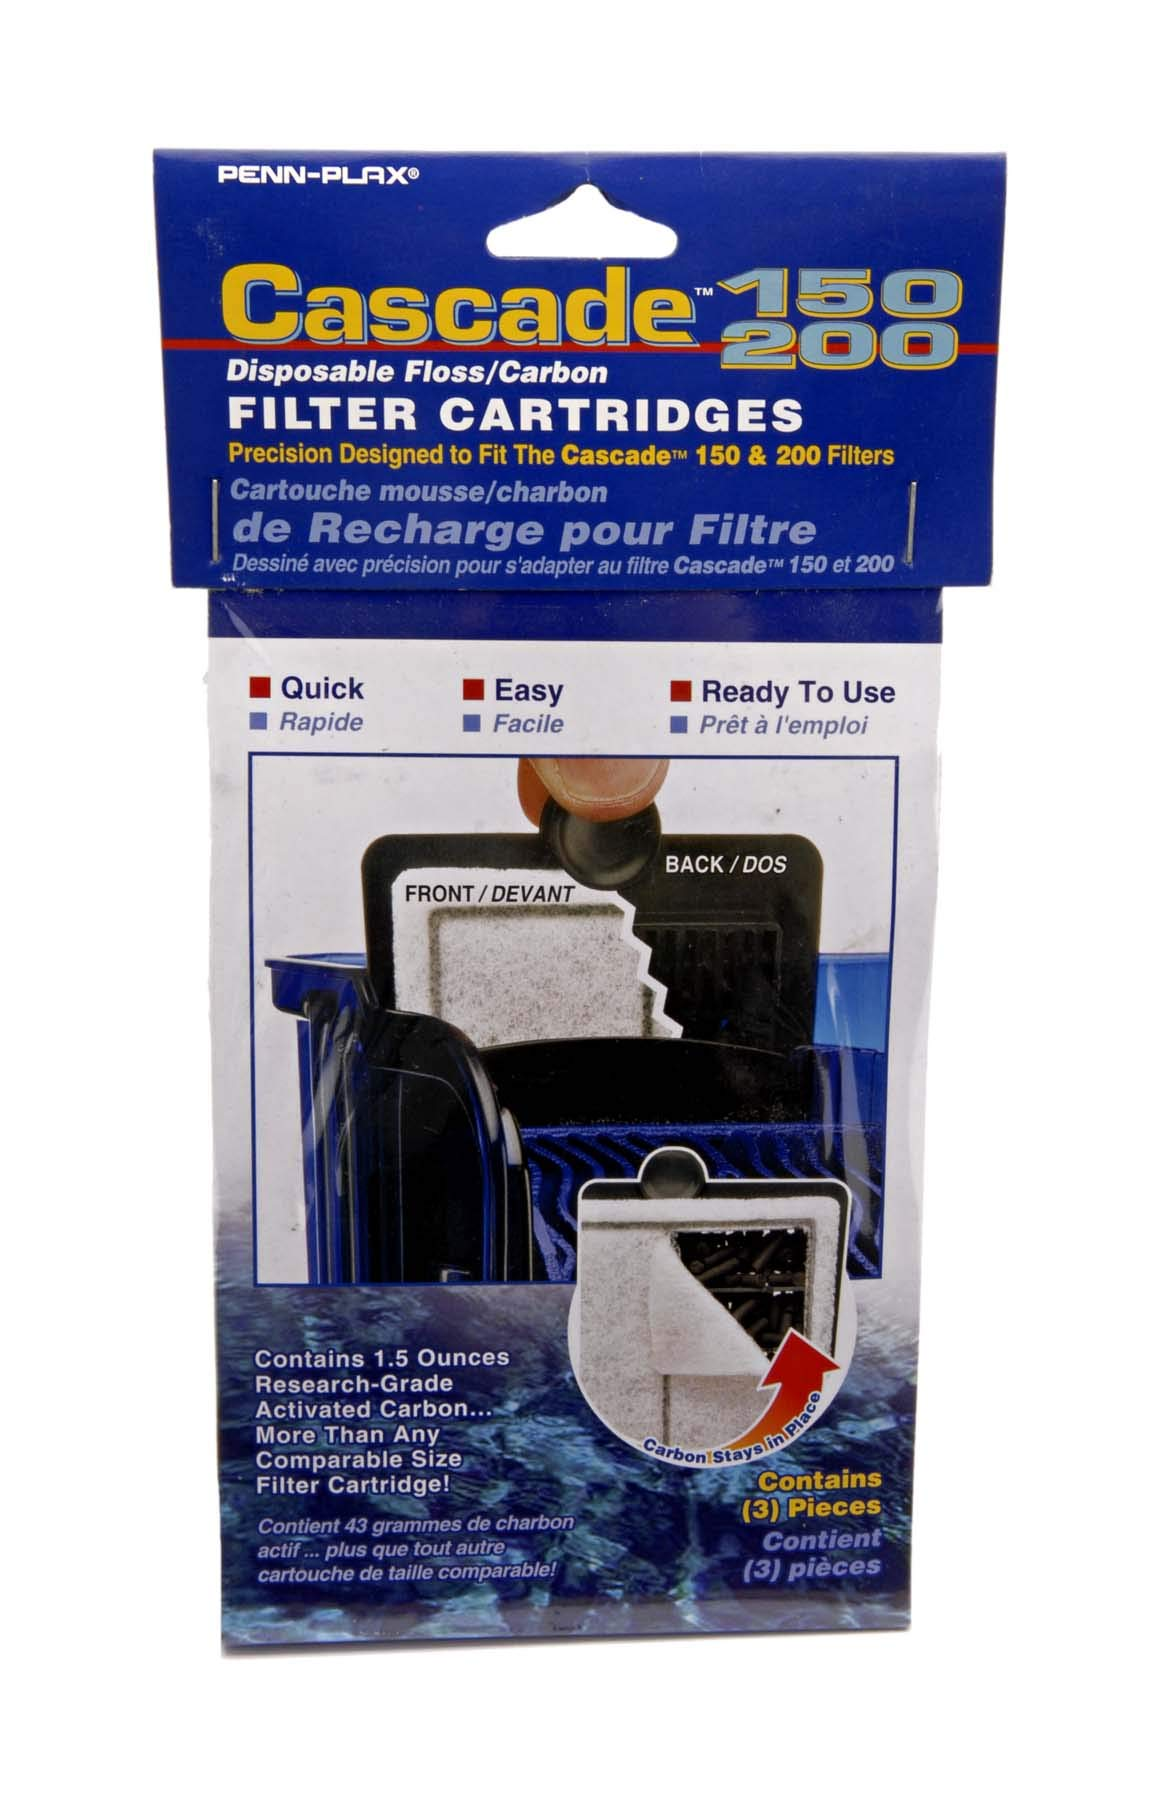 Penn Plax Cascade Hang-on Power Filter Replacement Cartridges - Pack of 1 (3 count) - CPF34C3